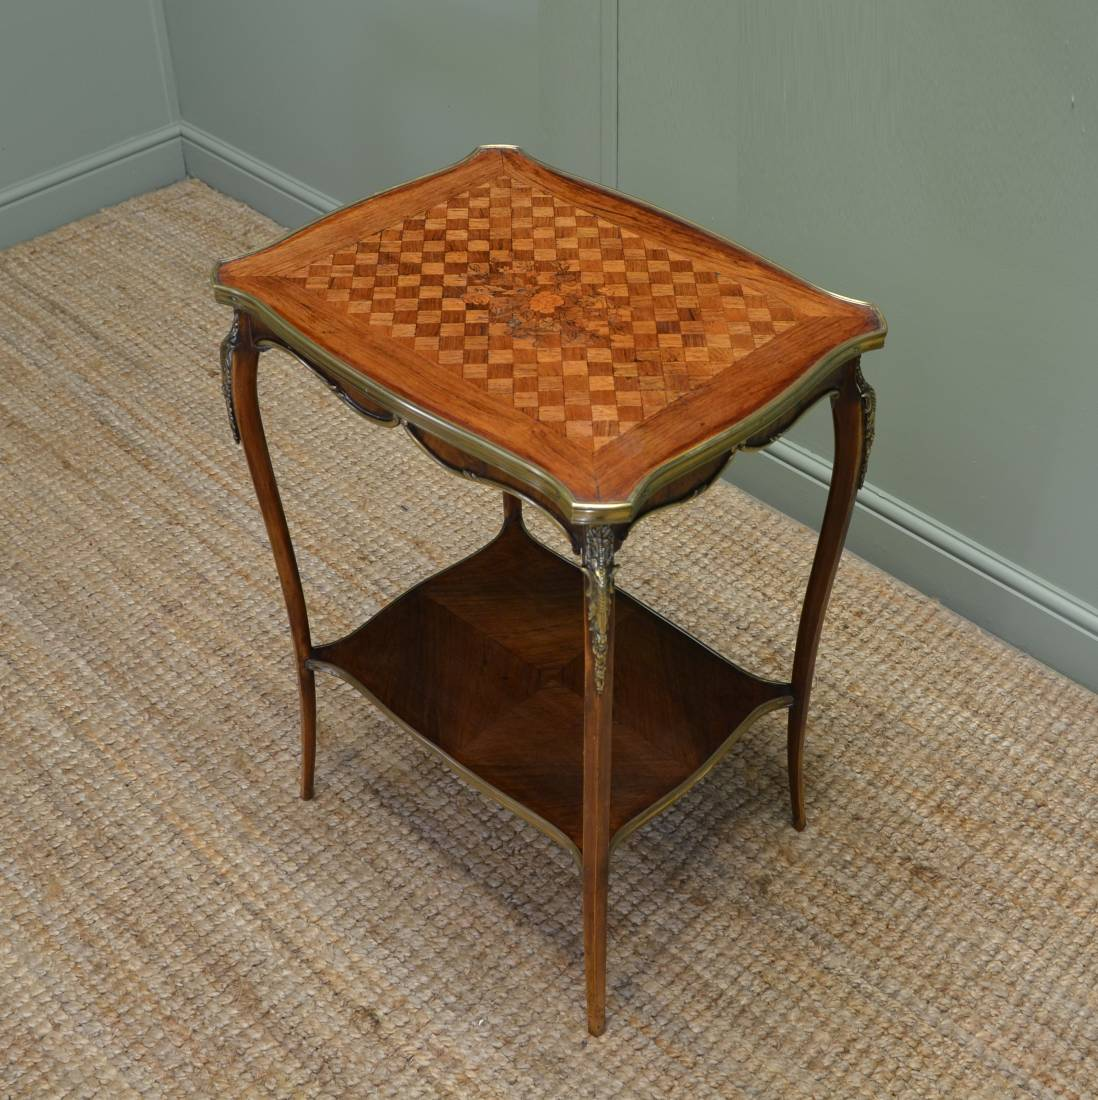 Superb Quality Inlaid Walnut Antique Edwardian Occasional Table / Side Table